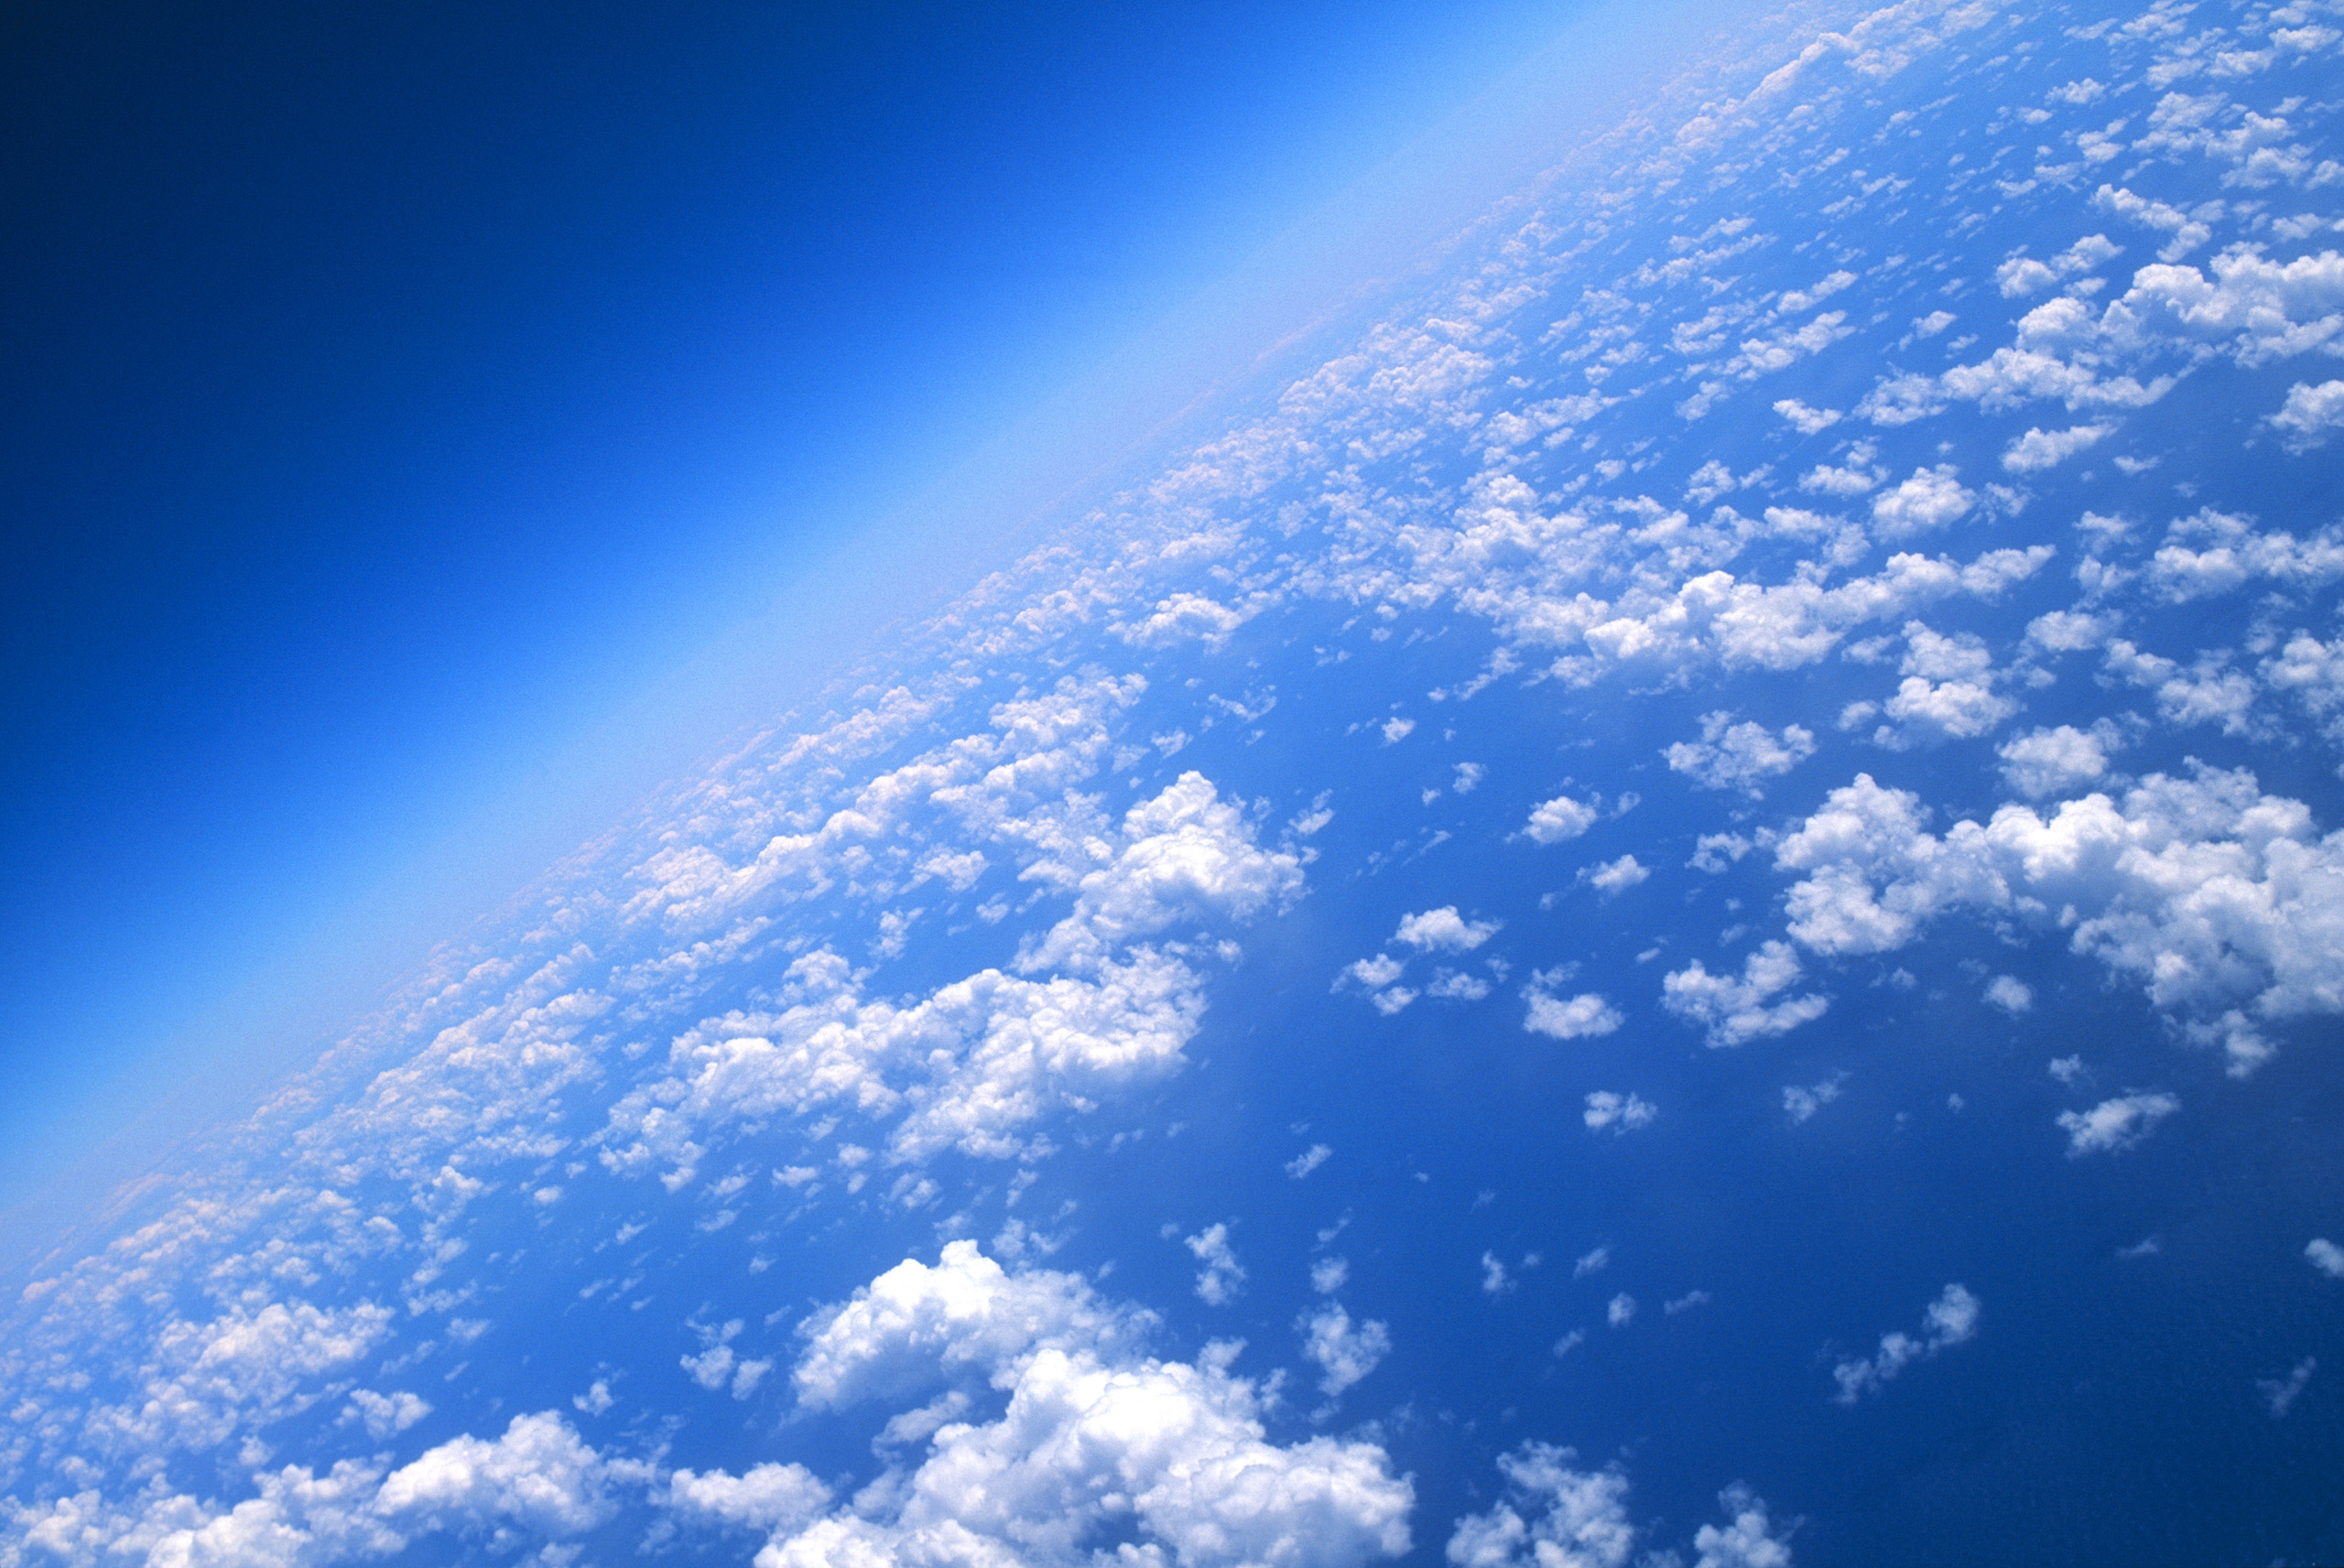 View of world from 40000 feet, clouds and blue sea.